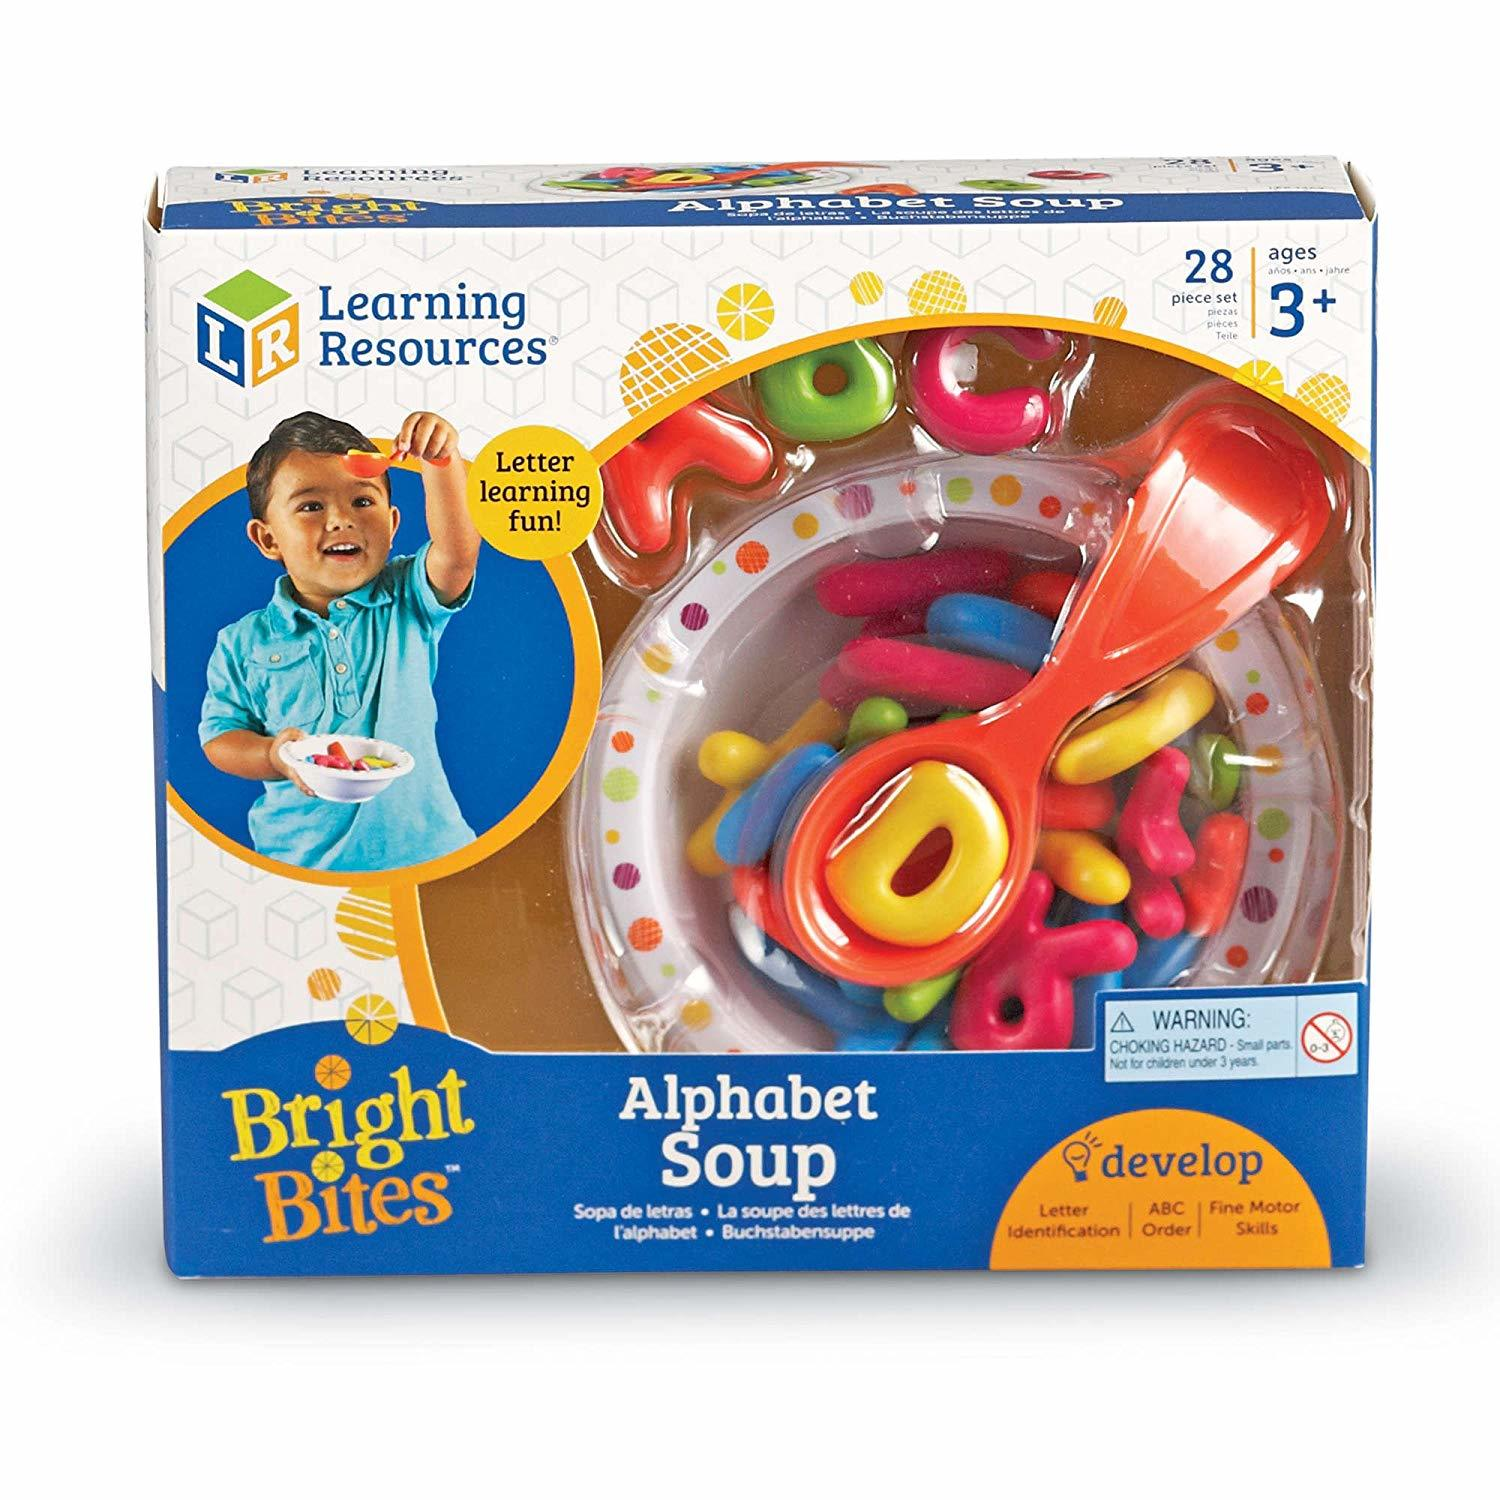 Learning Resources Alphabet Soup.jpg